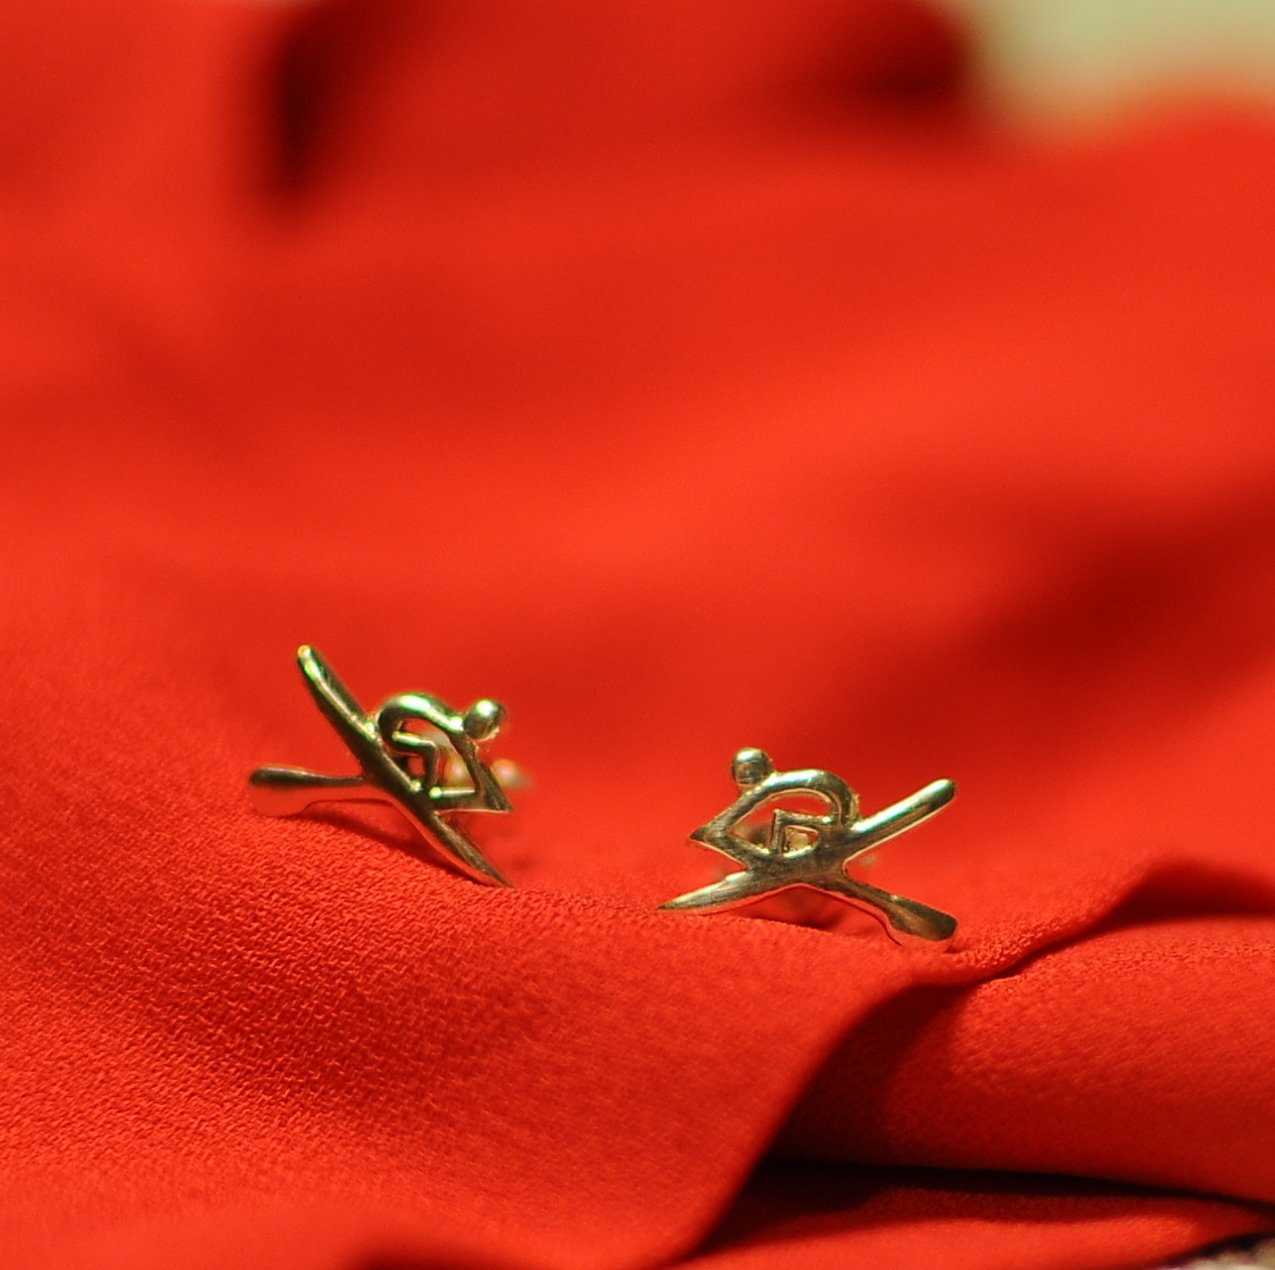 rowing earrings- rowing gifts ideas- rowing jewellery australia